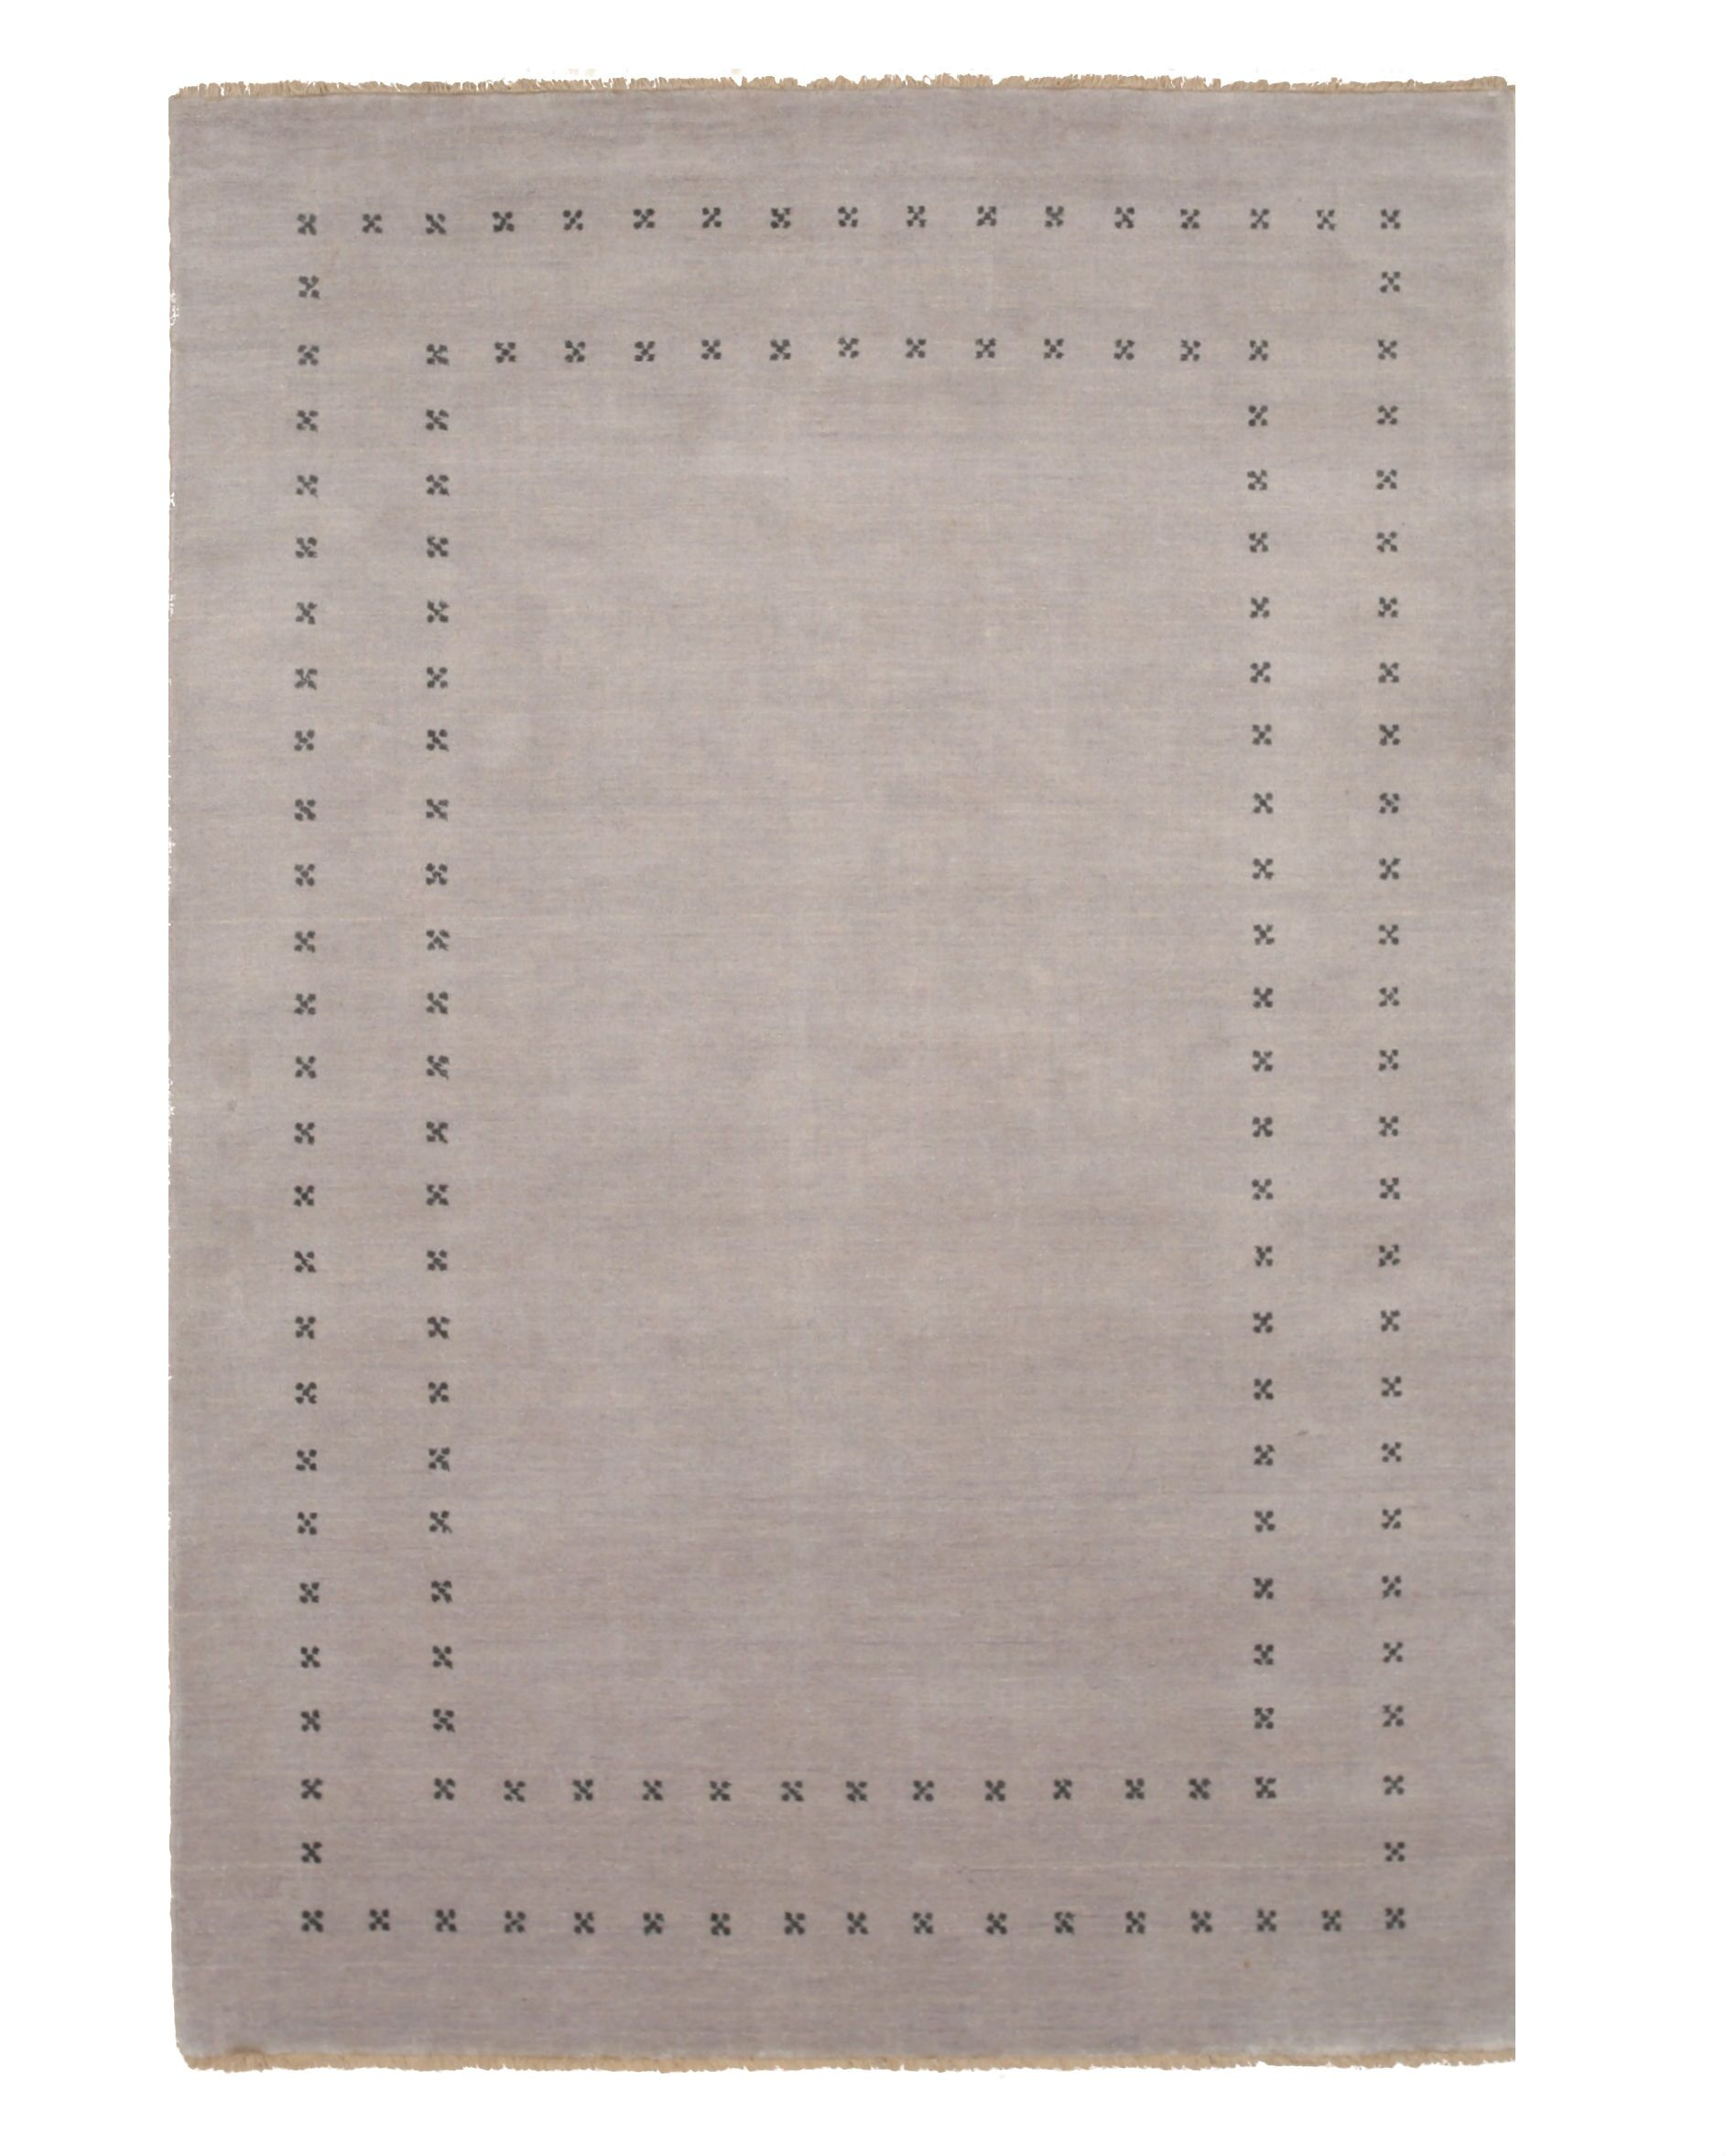 Dreher Transitional Solid Hand-Woven Wool Gray Area Rug Rug Size: Rectangle 9' x 12'